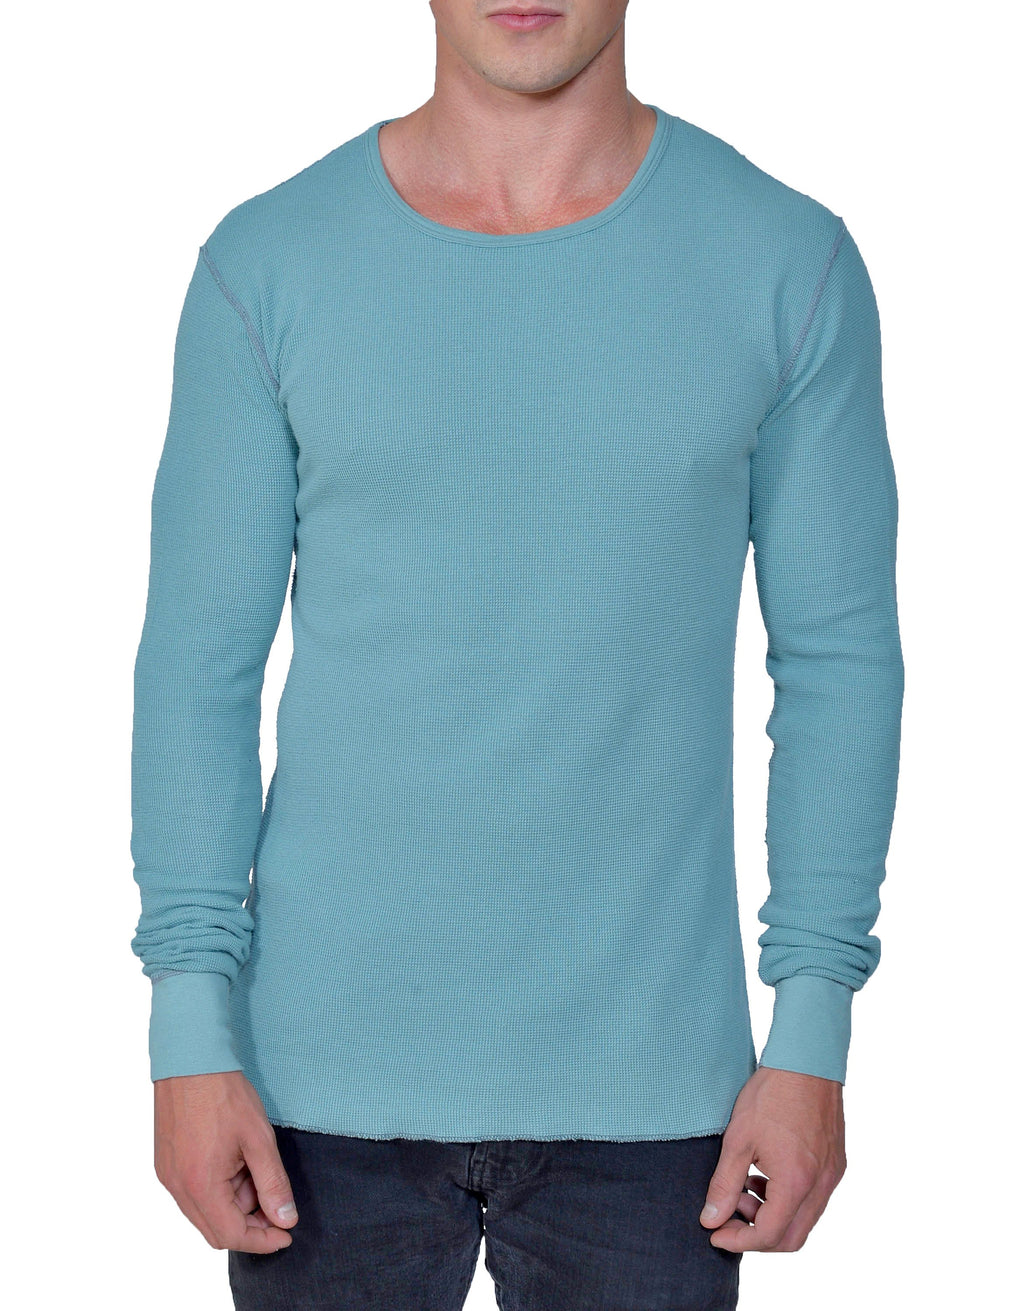 Men's Organic Cotton Long Sleeve Lightweight Thermal - Smokey Teal - USA Made - Asheville Apparel